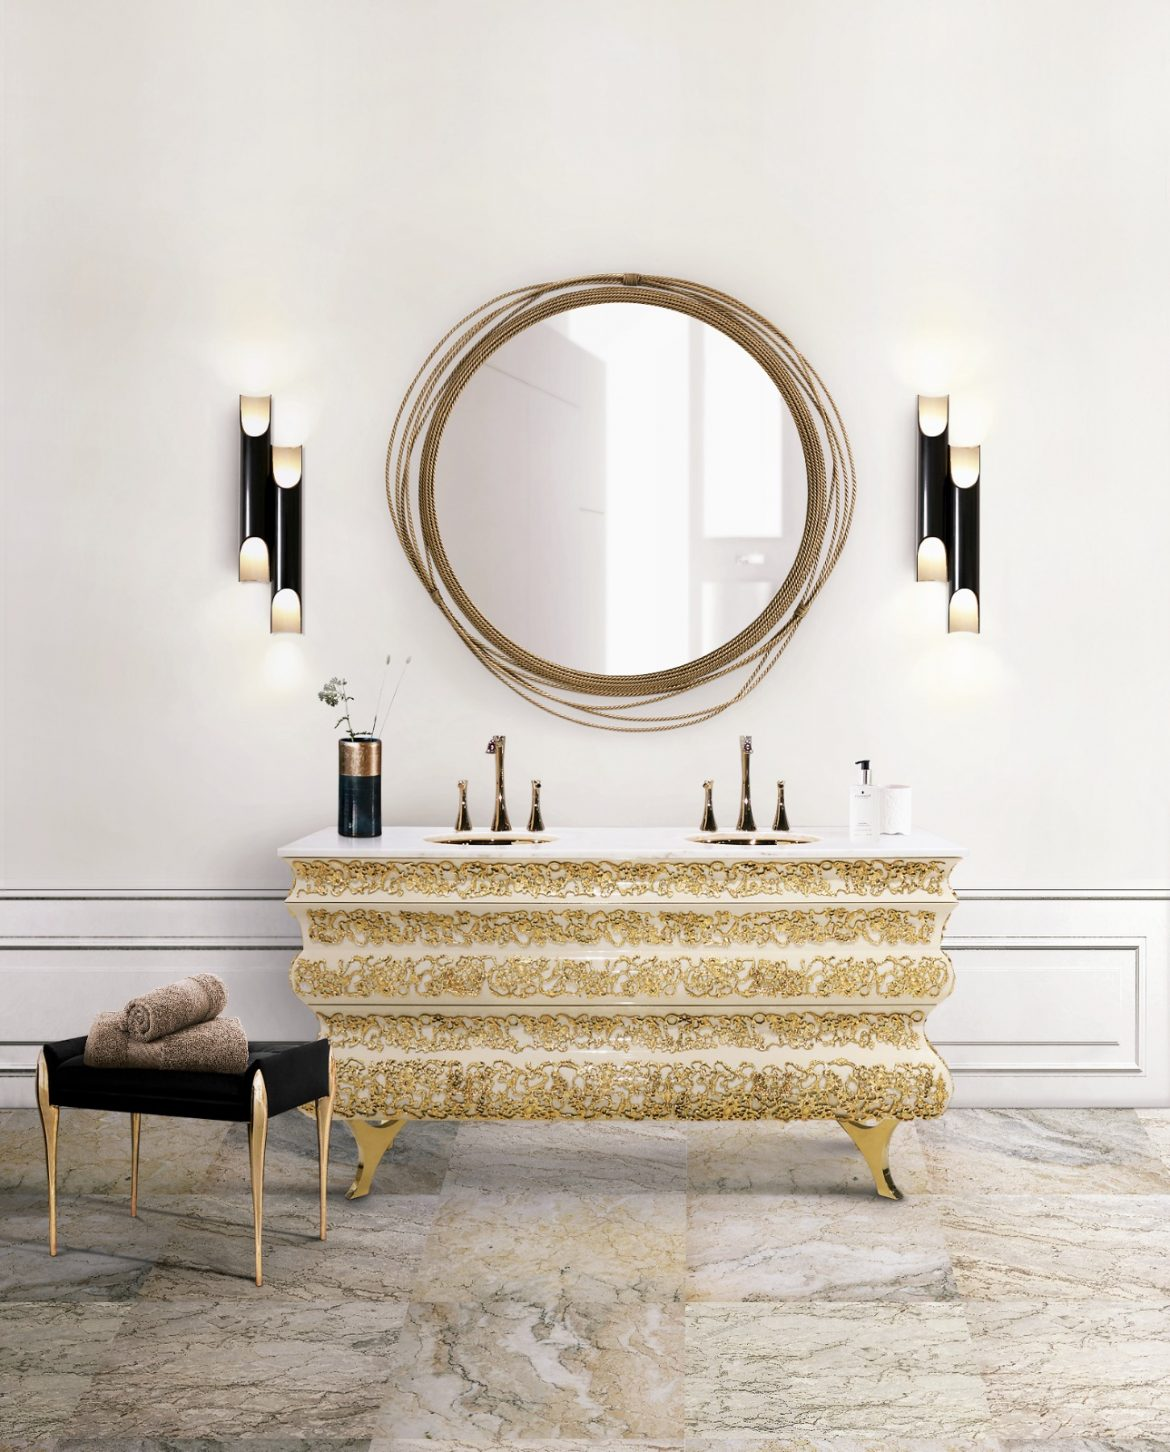 Mixed Metals Is The New Trend You Will Want To Follow mixed metals Mixed Metals Is The New Trend You Will Want To Follow Mixed Metals Is The New Trend You Will Want To Follow 6